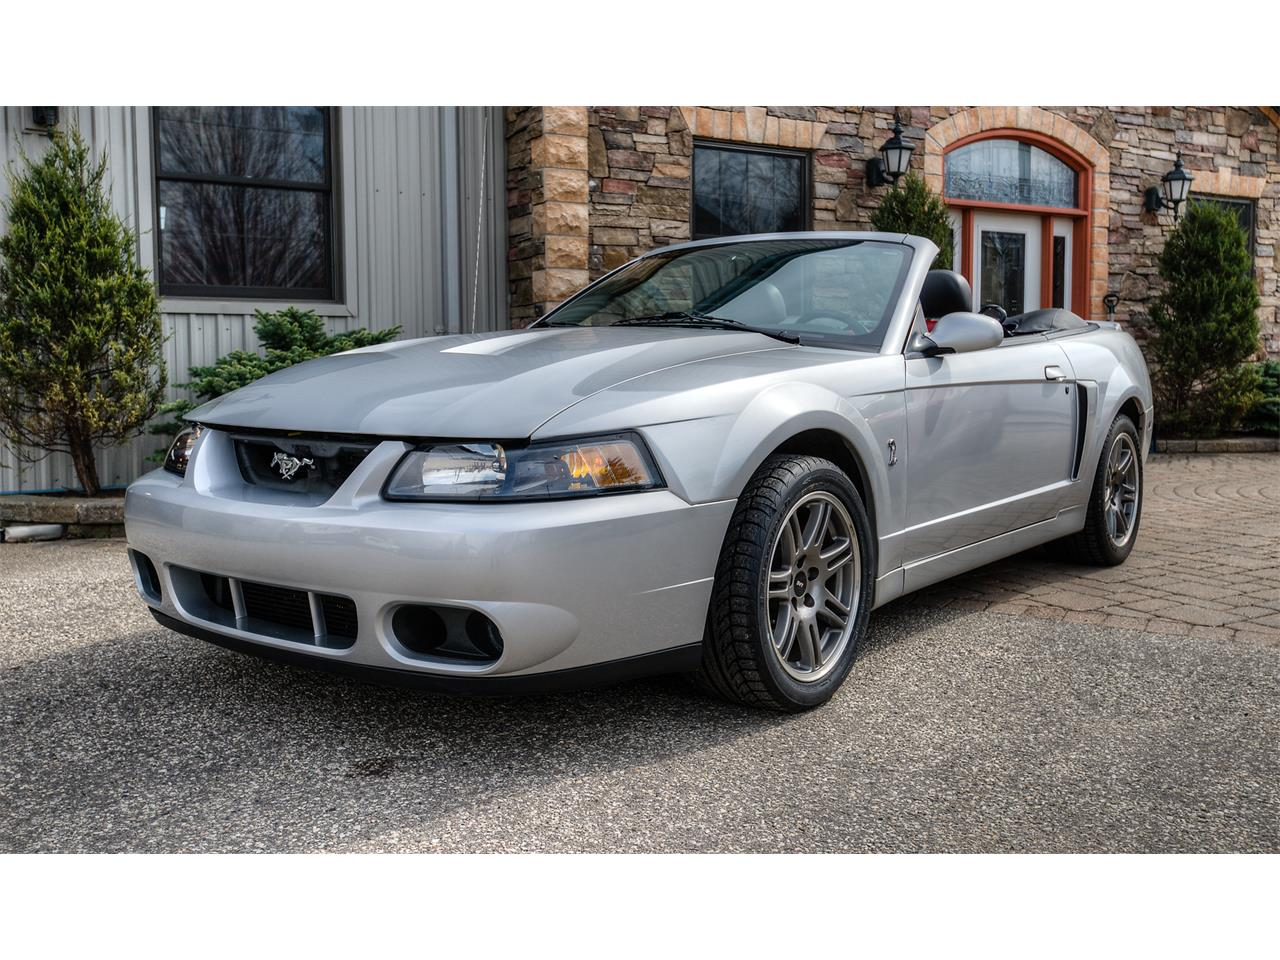 Large picture of 03 ford mustang svt cobra offered by a private seller nkxc